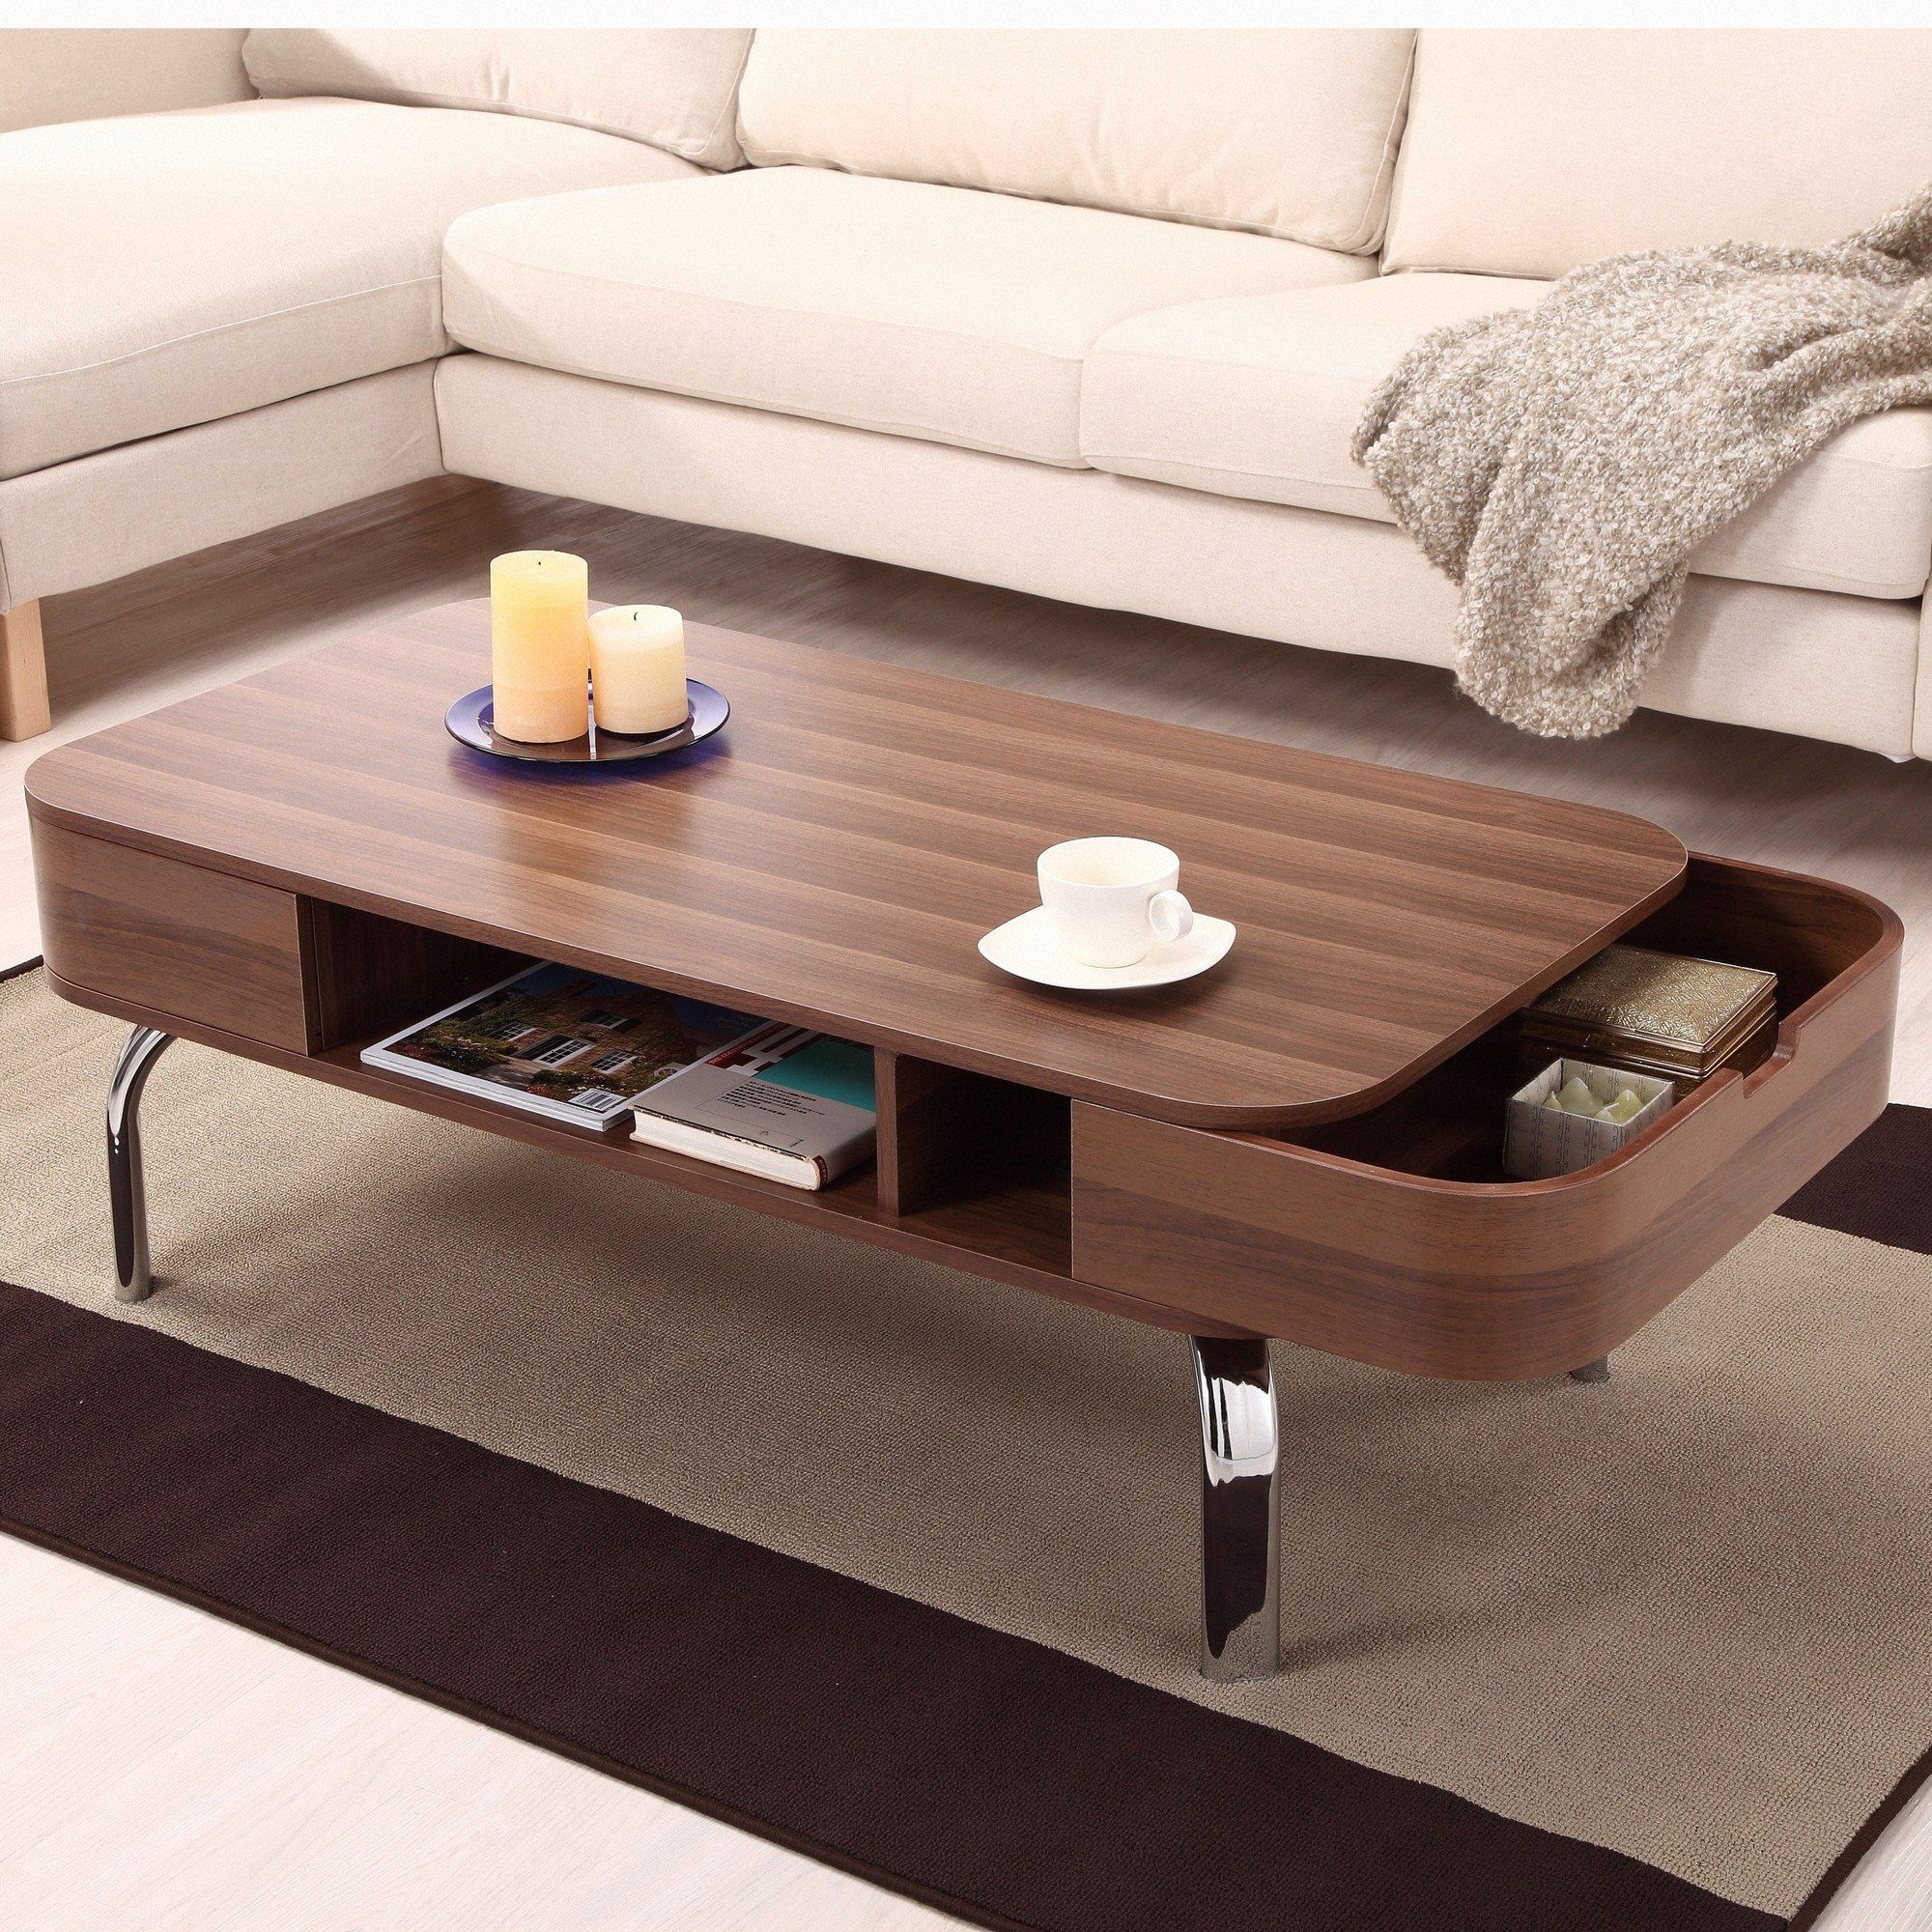 The lawson coffee table by hokku designs features convenient and the lawson coffee table by hokku designs features convenient and versatile two pocket drawers and sits geotapseo Image collections